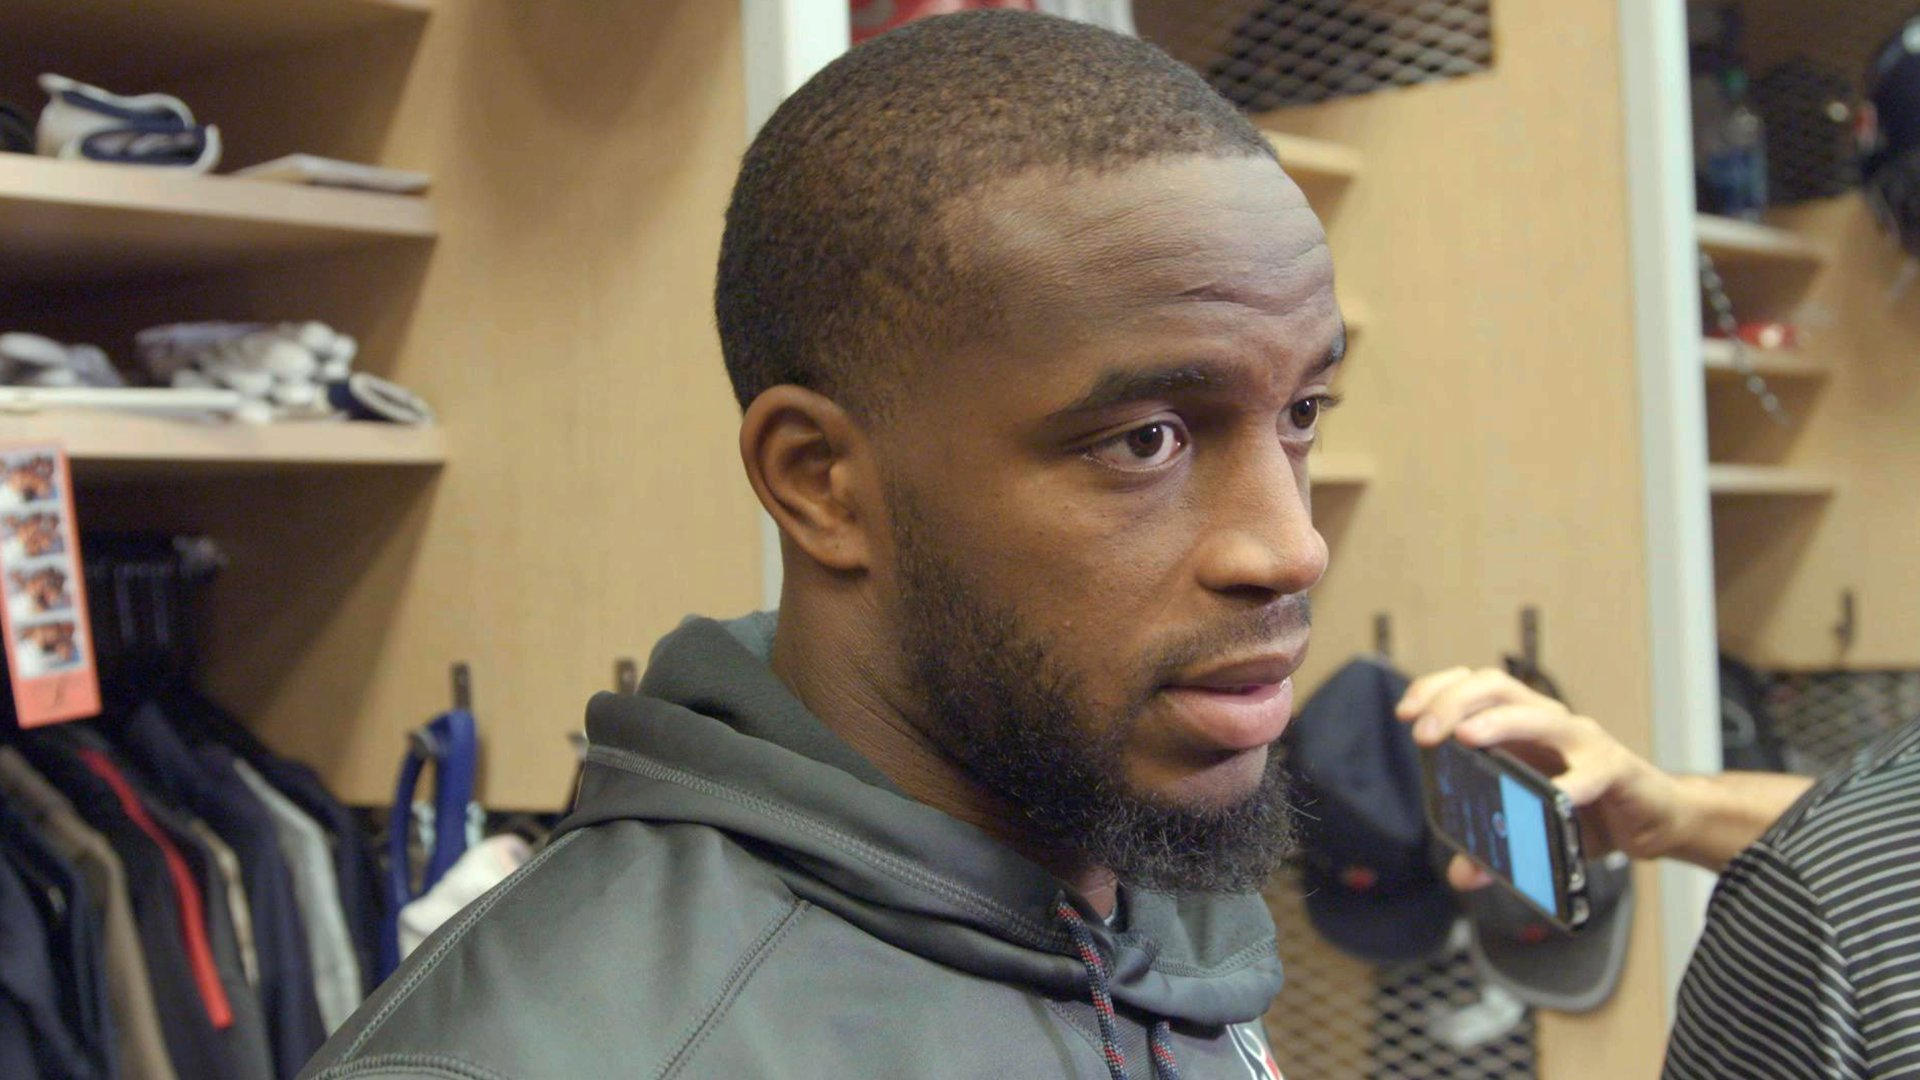 Jackson on Week 1: 'Time to get to it... It's a great opportunity for us.'  ��: https://t.co/ny5L53kAz2 https://t.co/FcuJsh1xSD